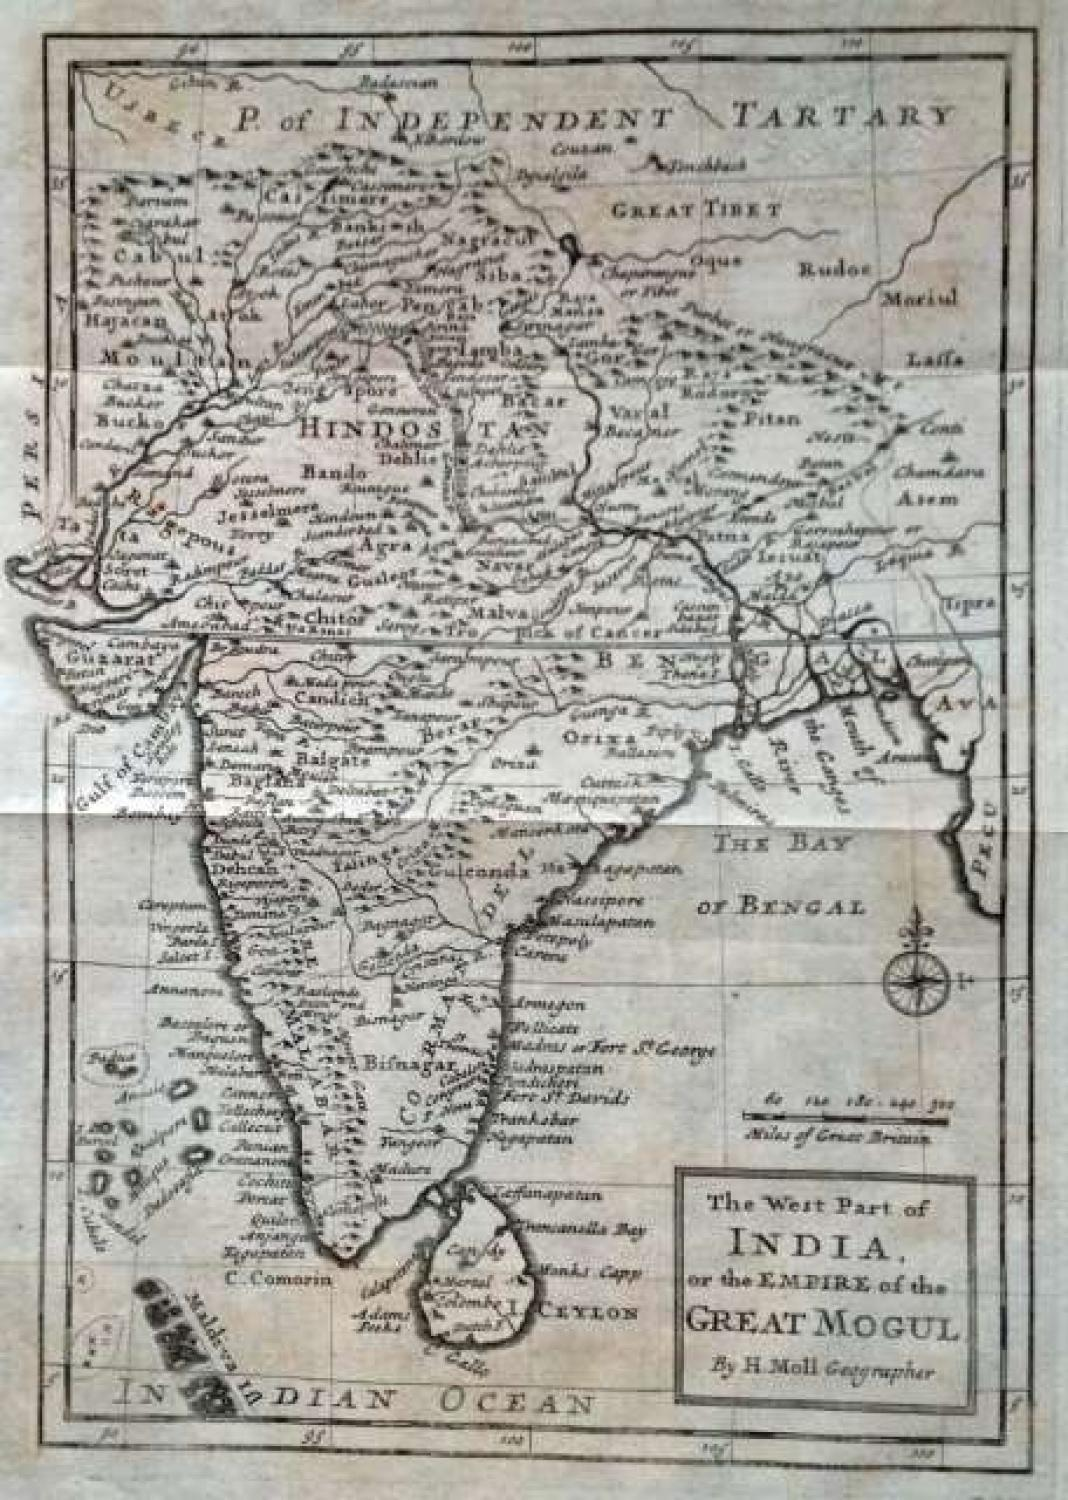 SOLD The West Part Of India or the Empire of the Great Mogul